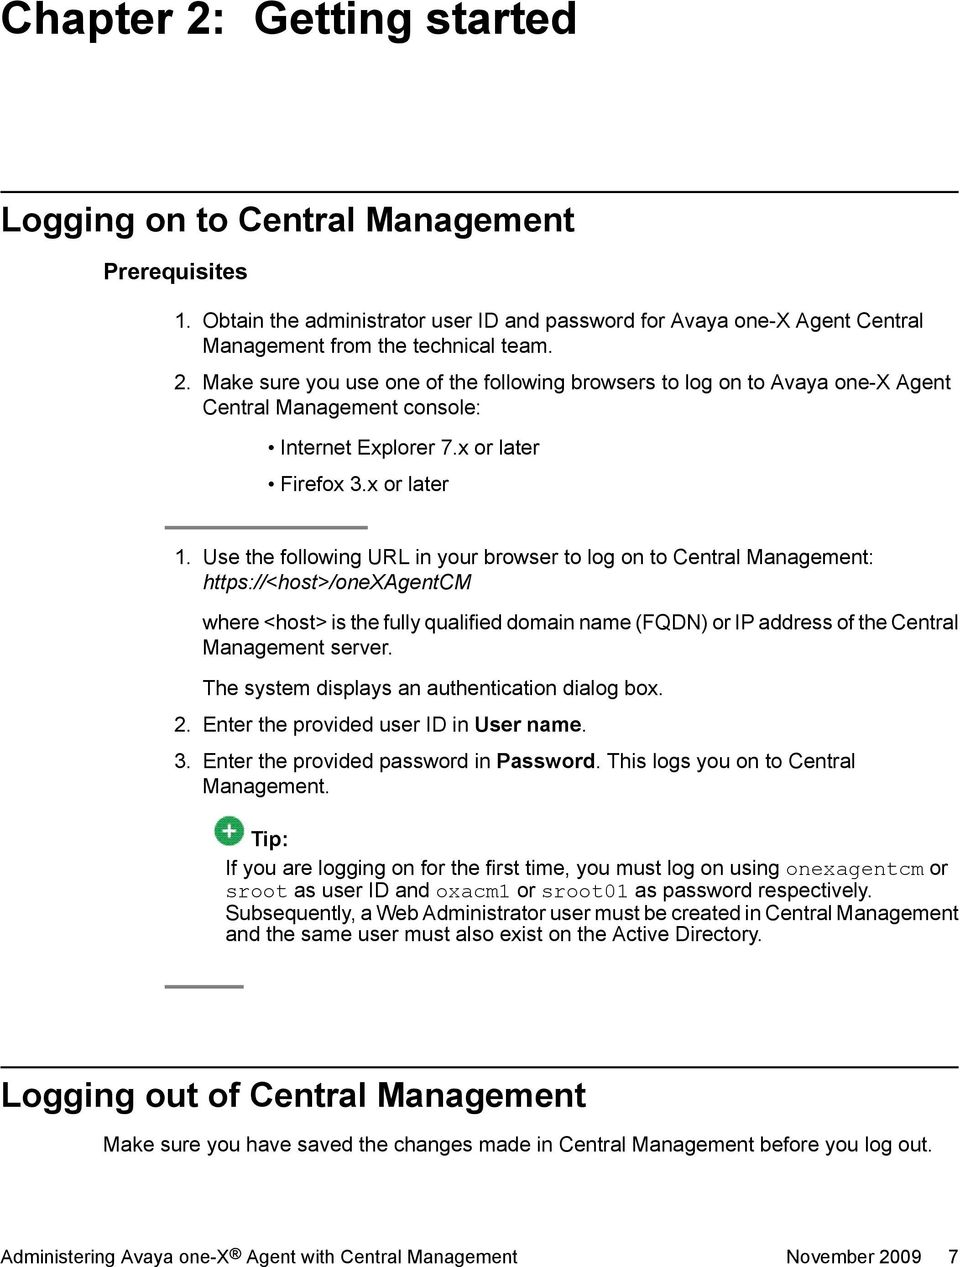 Use the following URL in your browser to log on to Central Management: https://<host>/onexagentcm where <host> is the fully qualified domain name (FQDN) or IP address of the Central Management server.